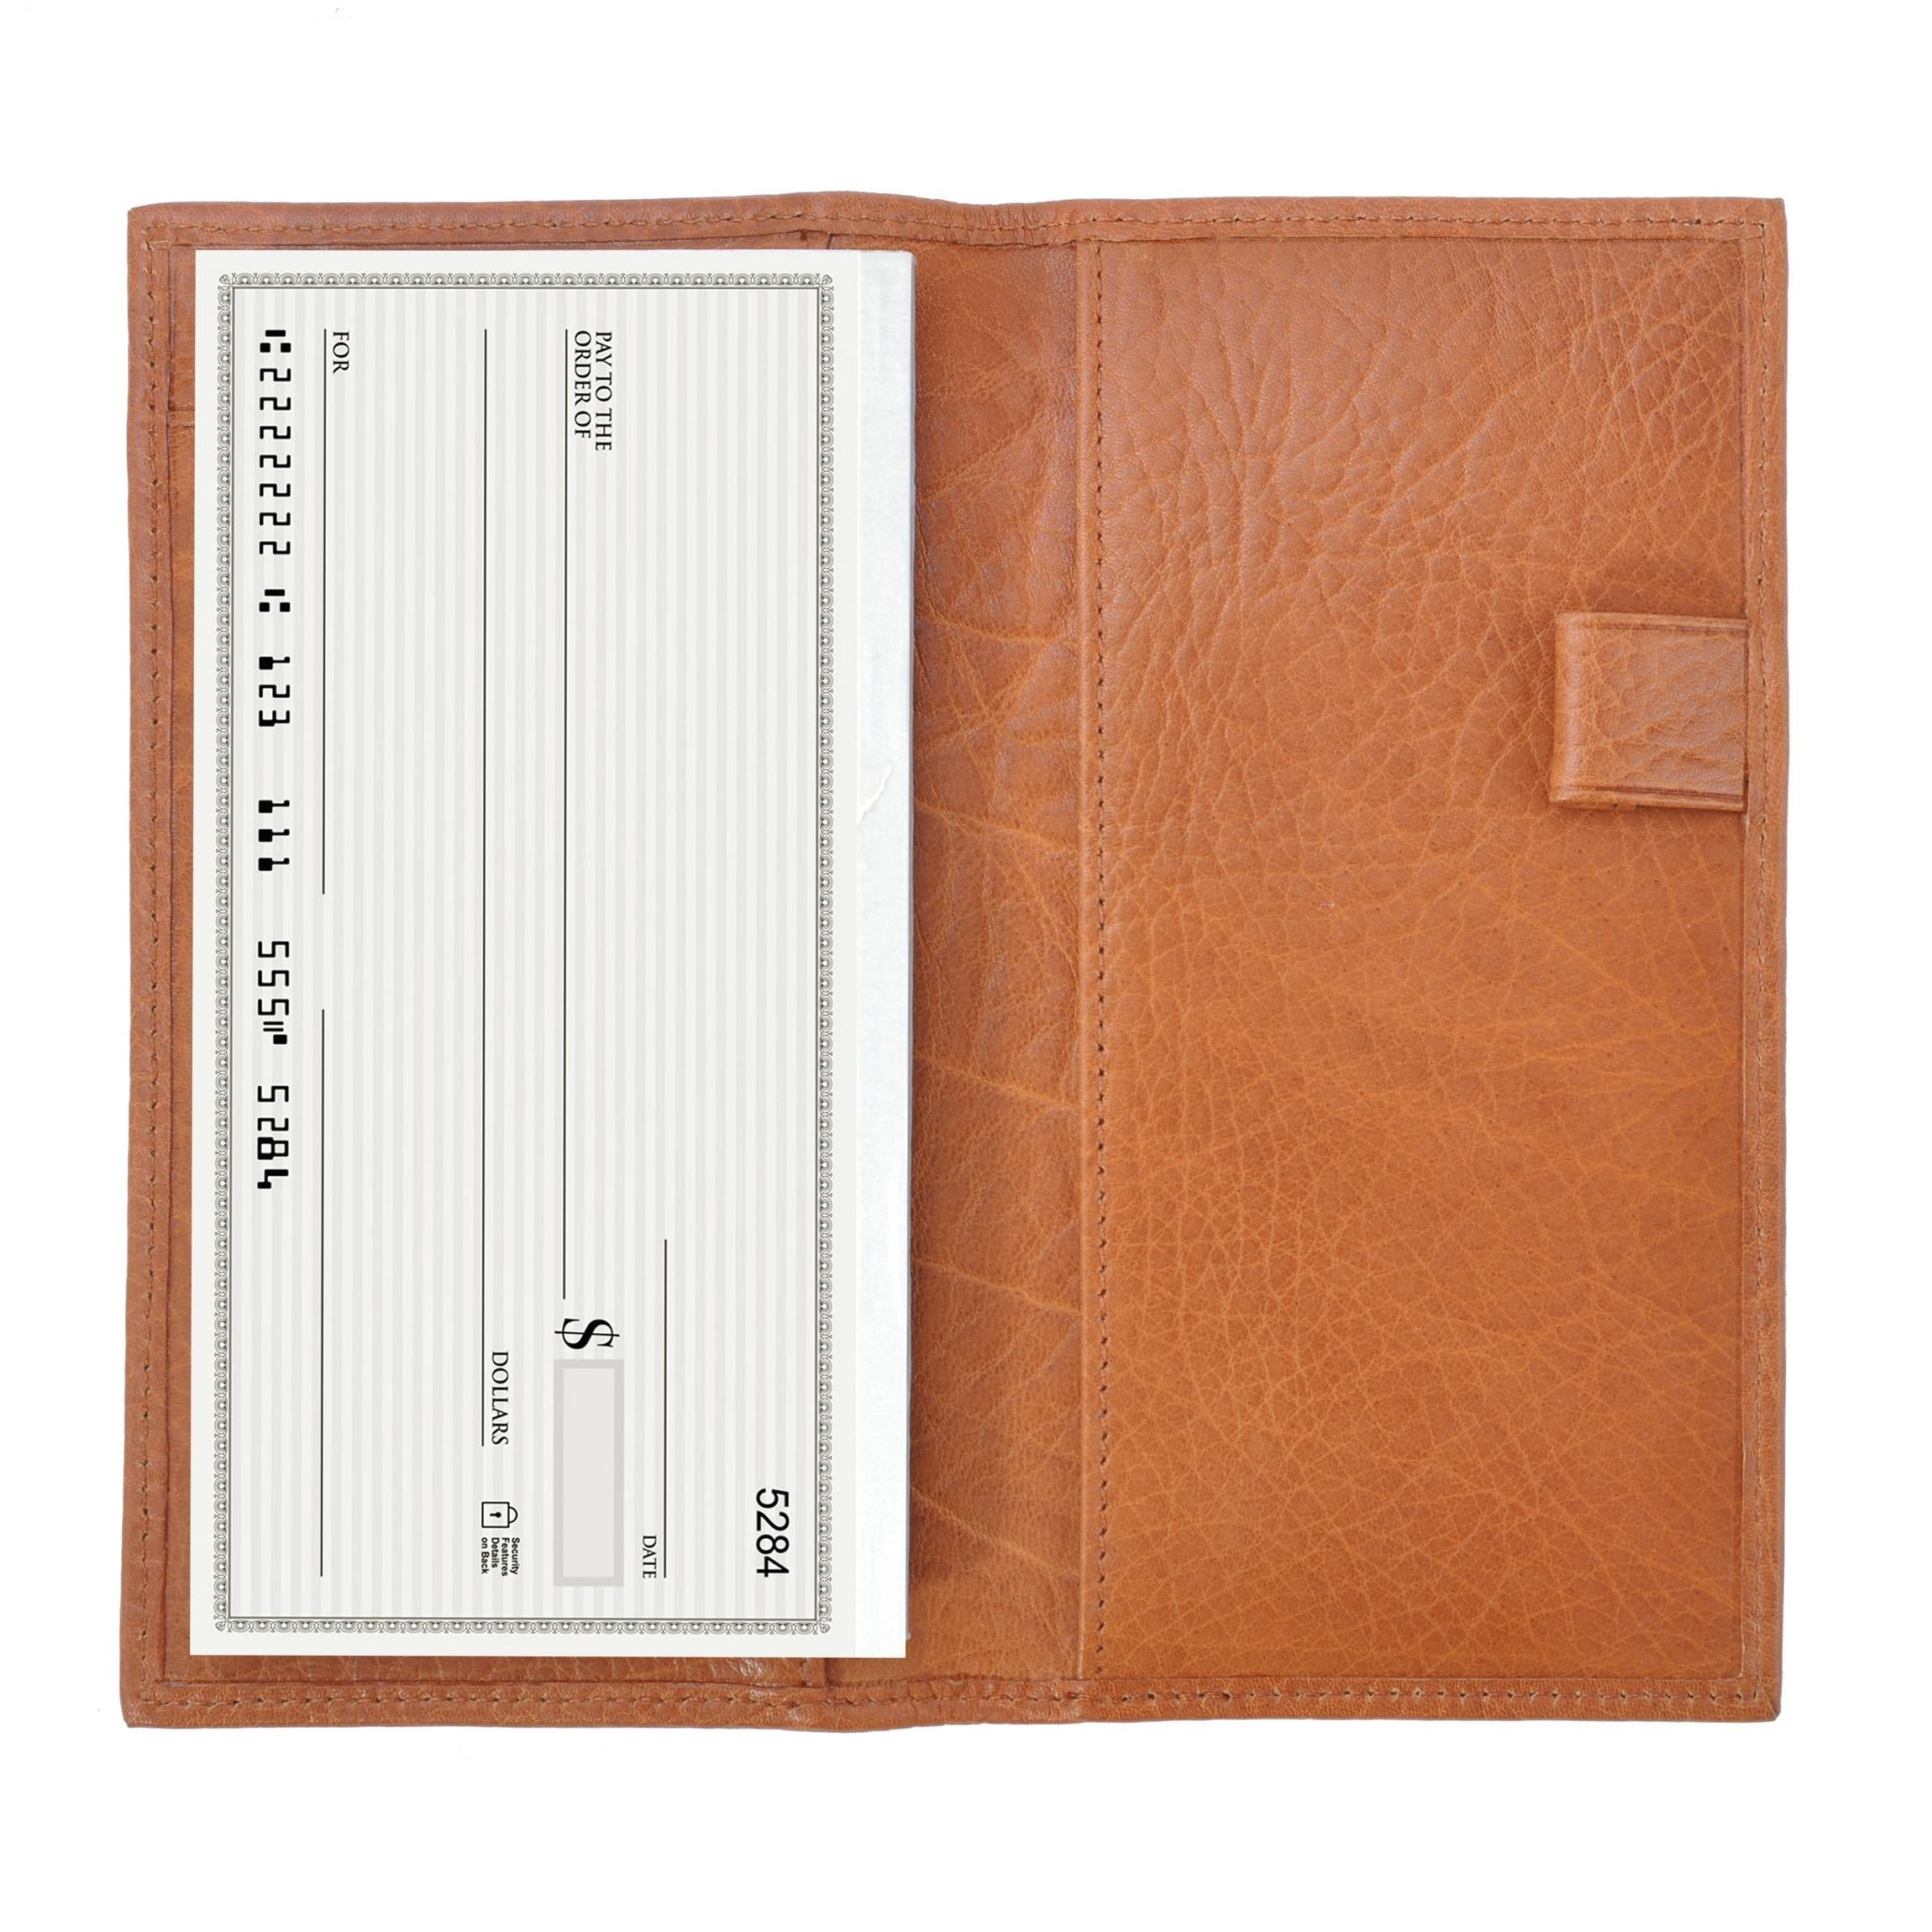 Deluxe Checkbook Cover with Divider - Italian Leather - Whiskey (brown)